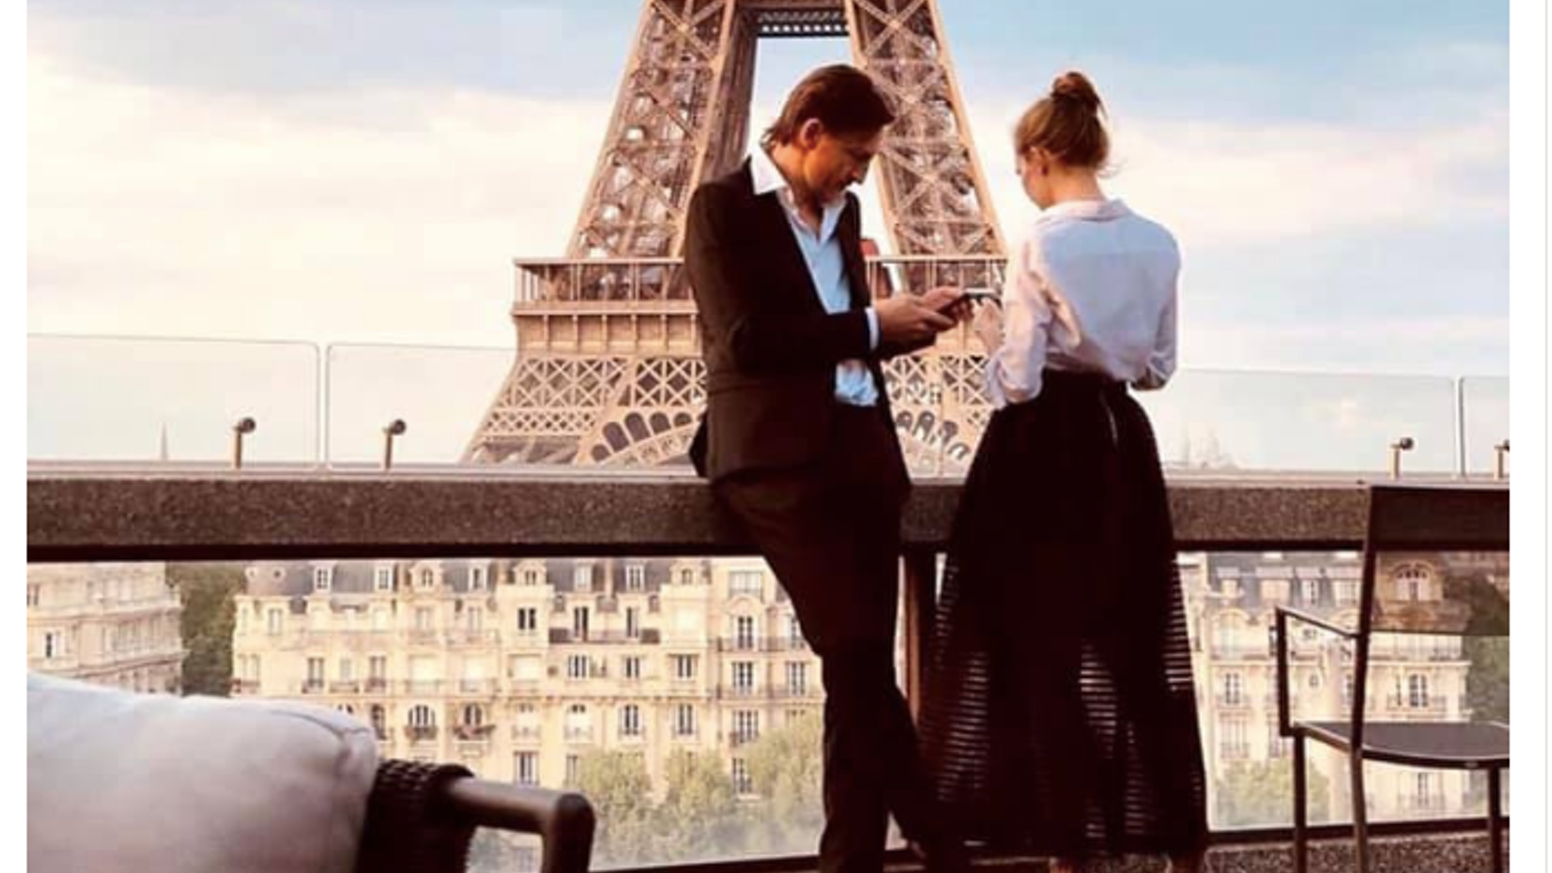 A Paris memoir from the host of The Earful Tower podcast. Thanks to all who contributed! If you missed the Kickstarter campaign, order your copy on the blue button below!